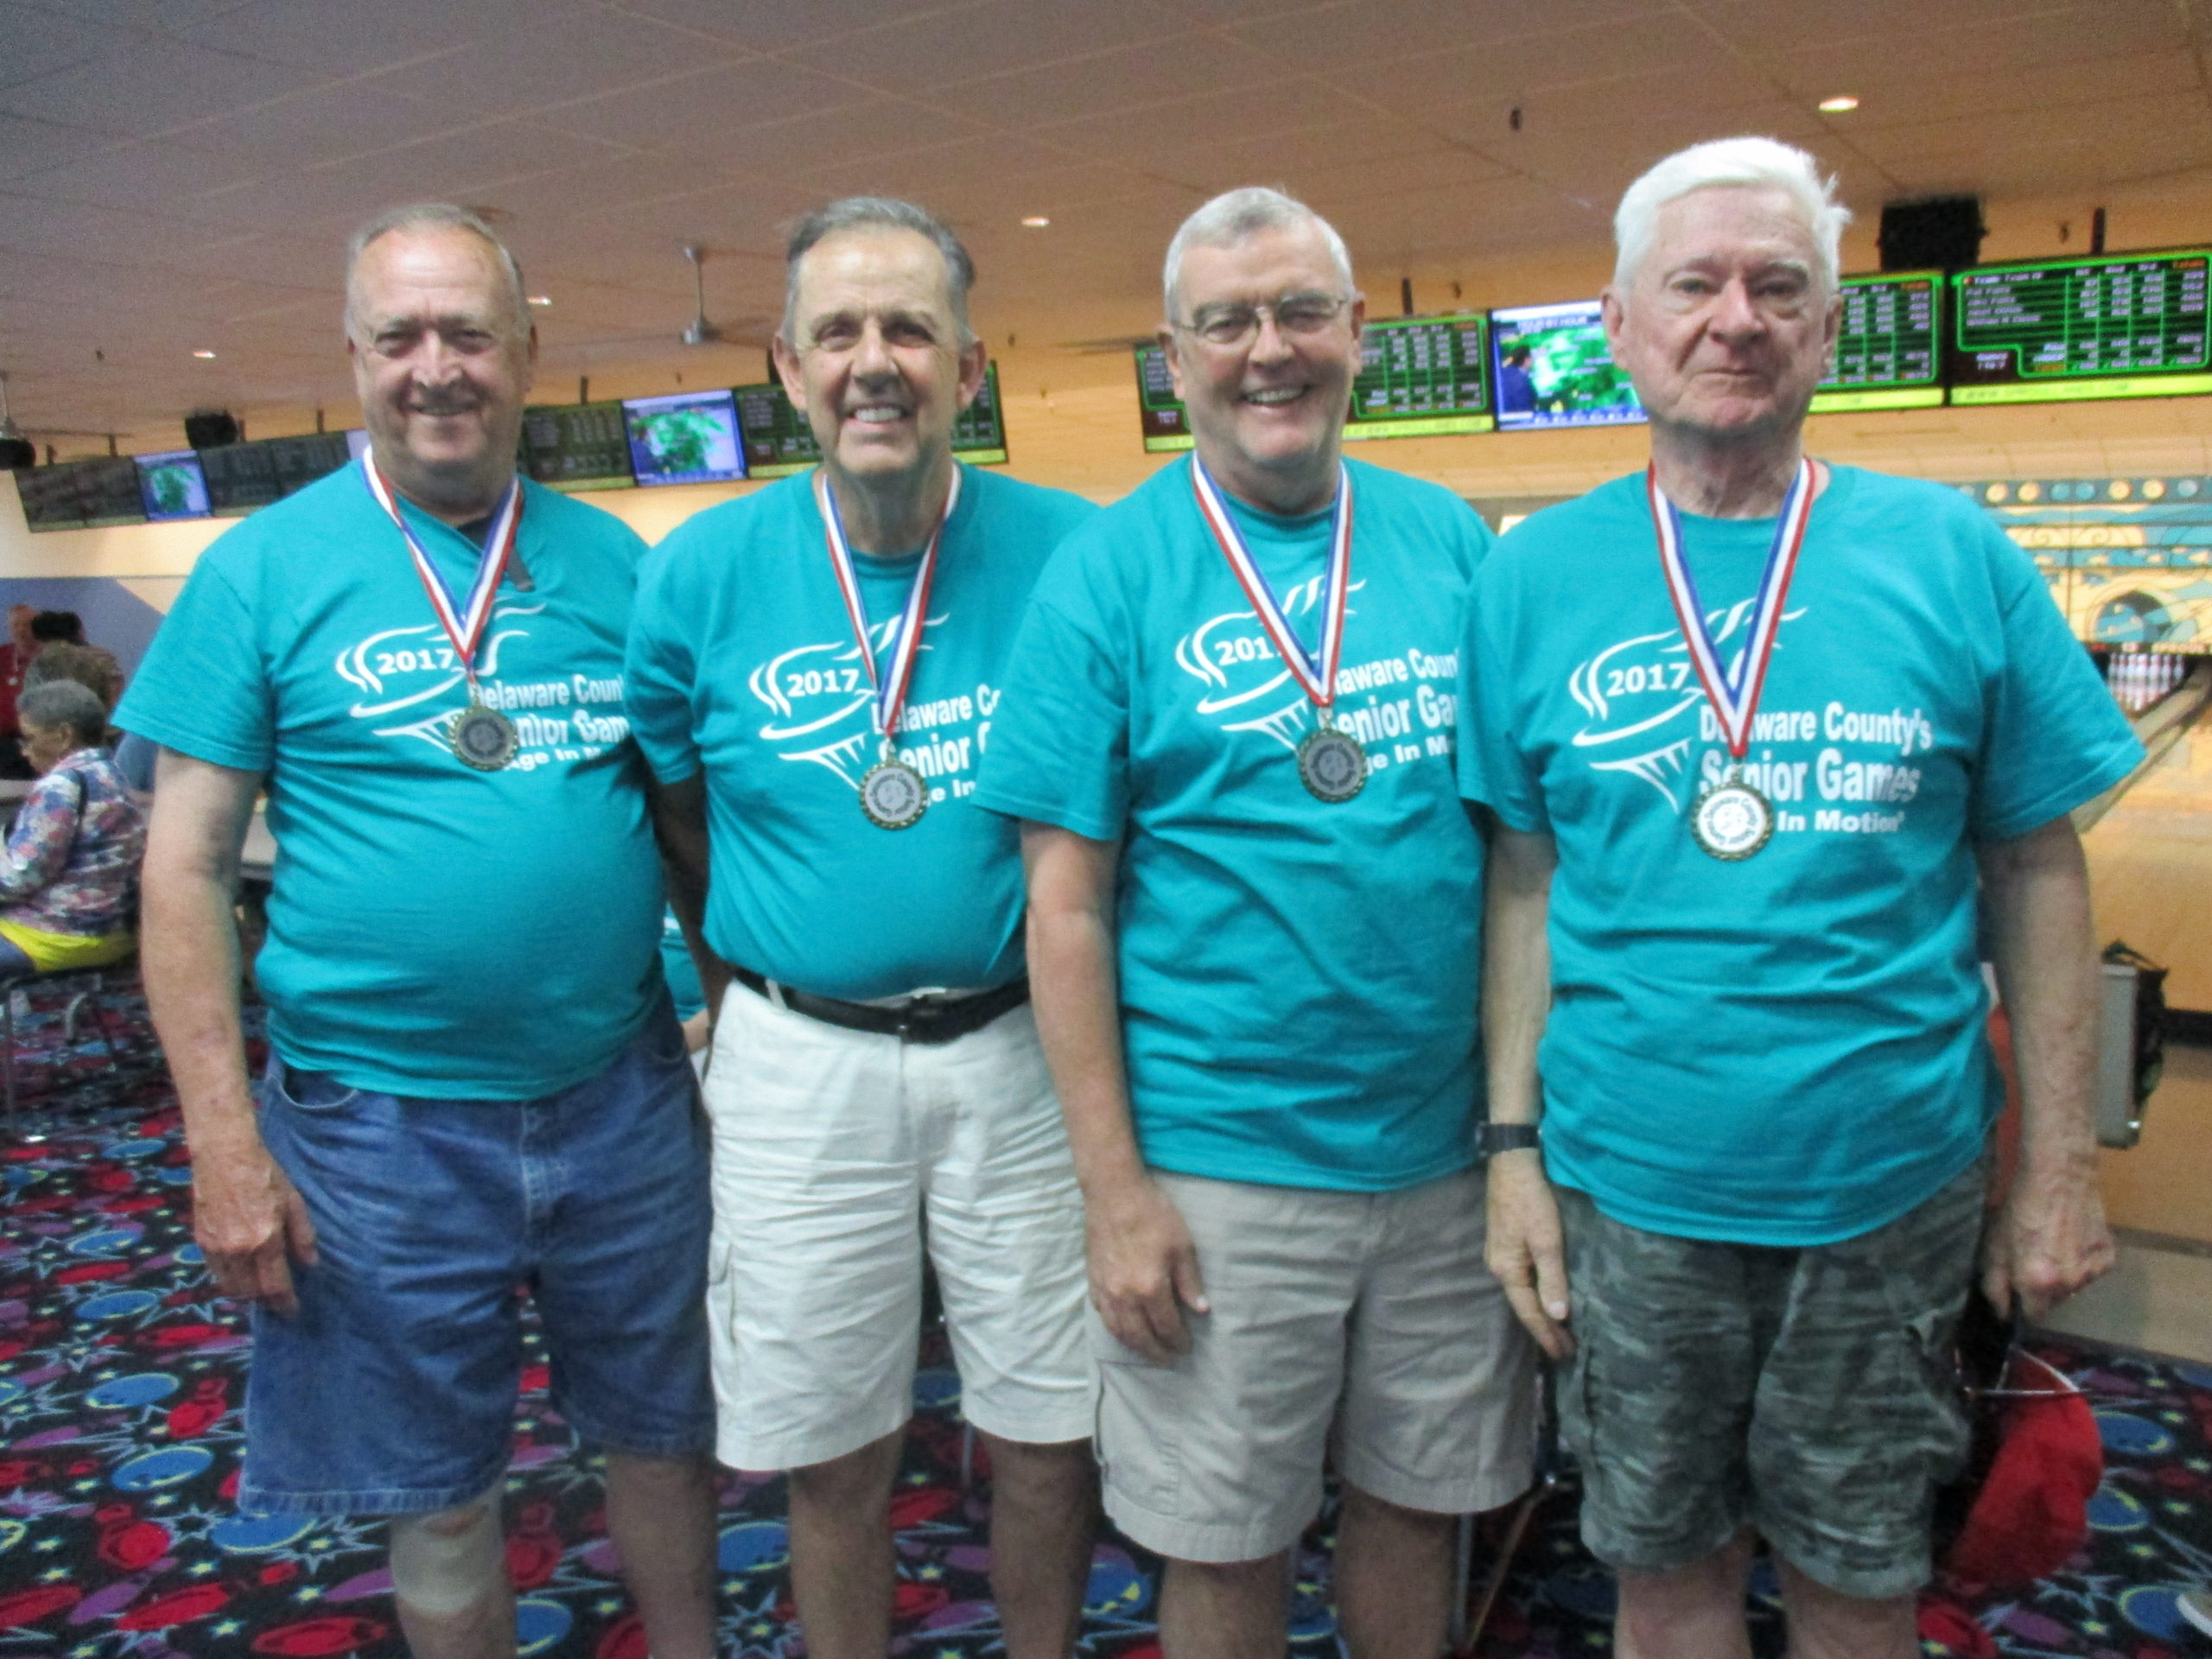 Athletes Ready to 'Compete, Connect, Conquer' at Delco Senior Games